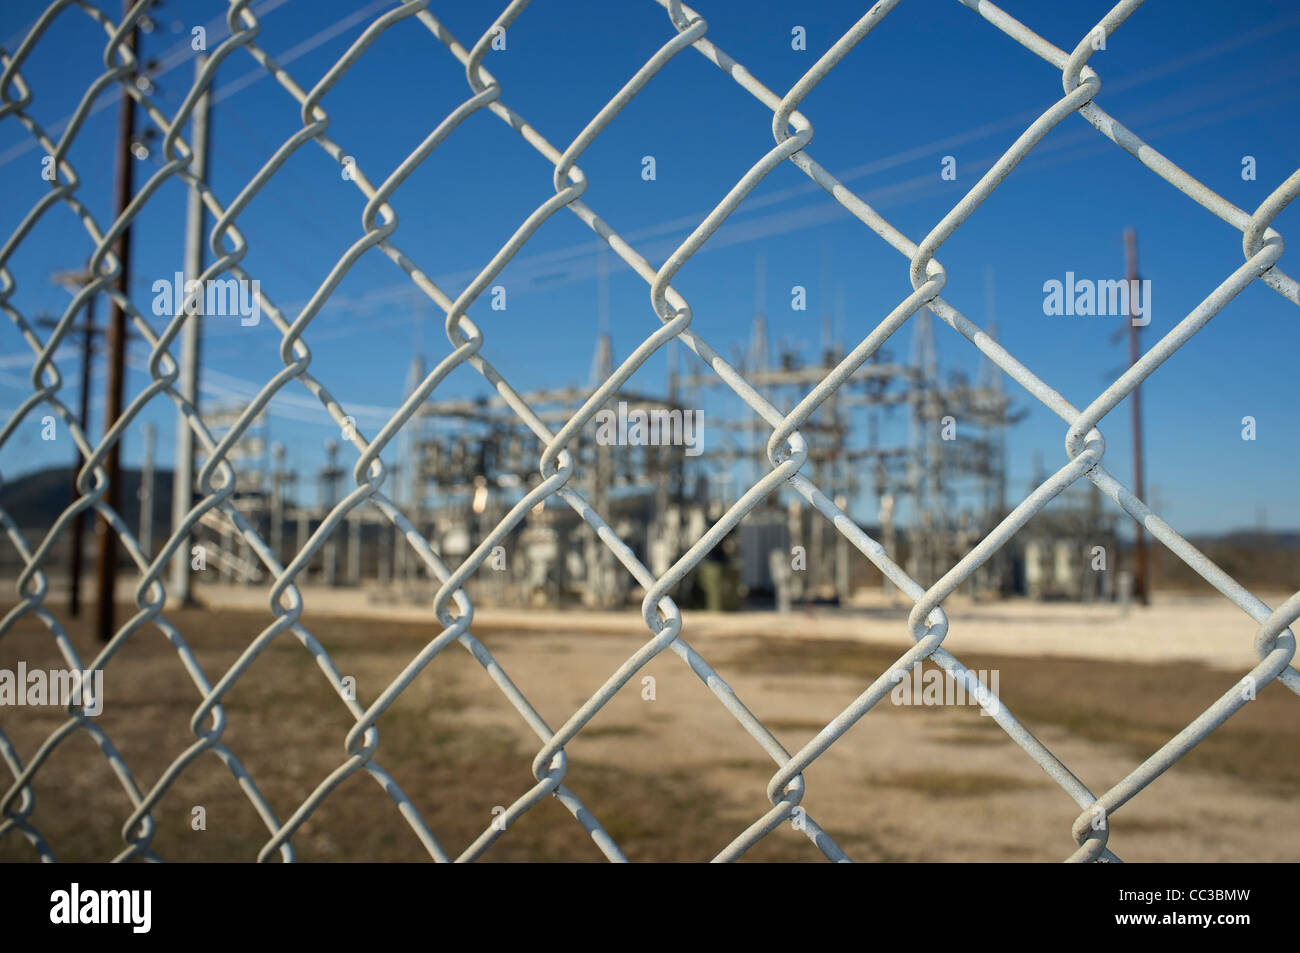 Chain-link fence restricting access to power transformation and distribution station in Texas, USA - Stock Image